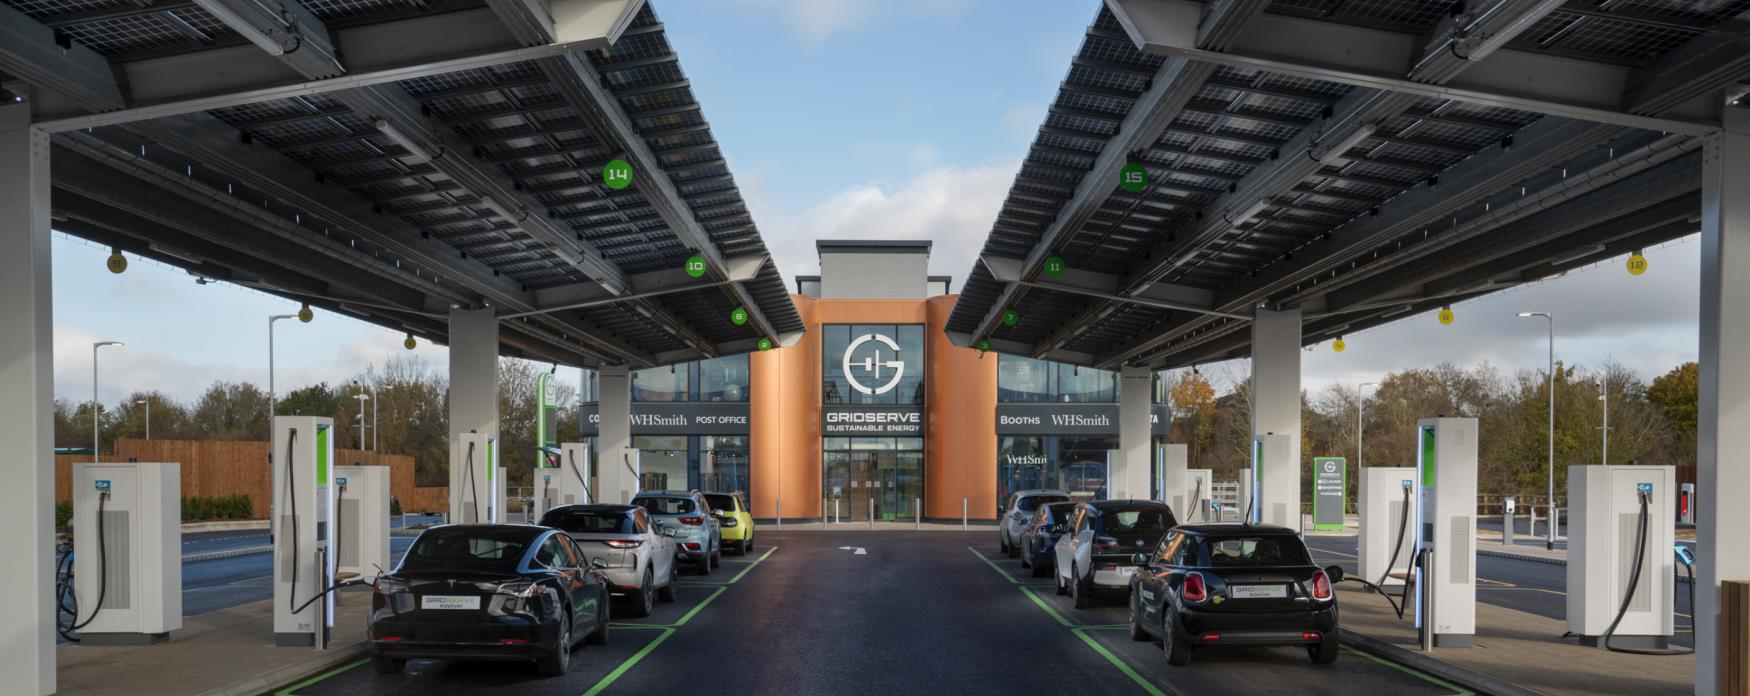 Photograph of Gridserve Electric Forecourt at Great Notley